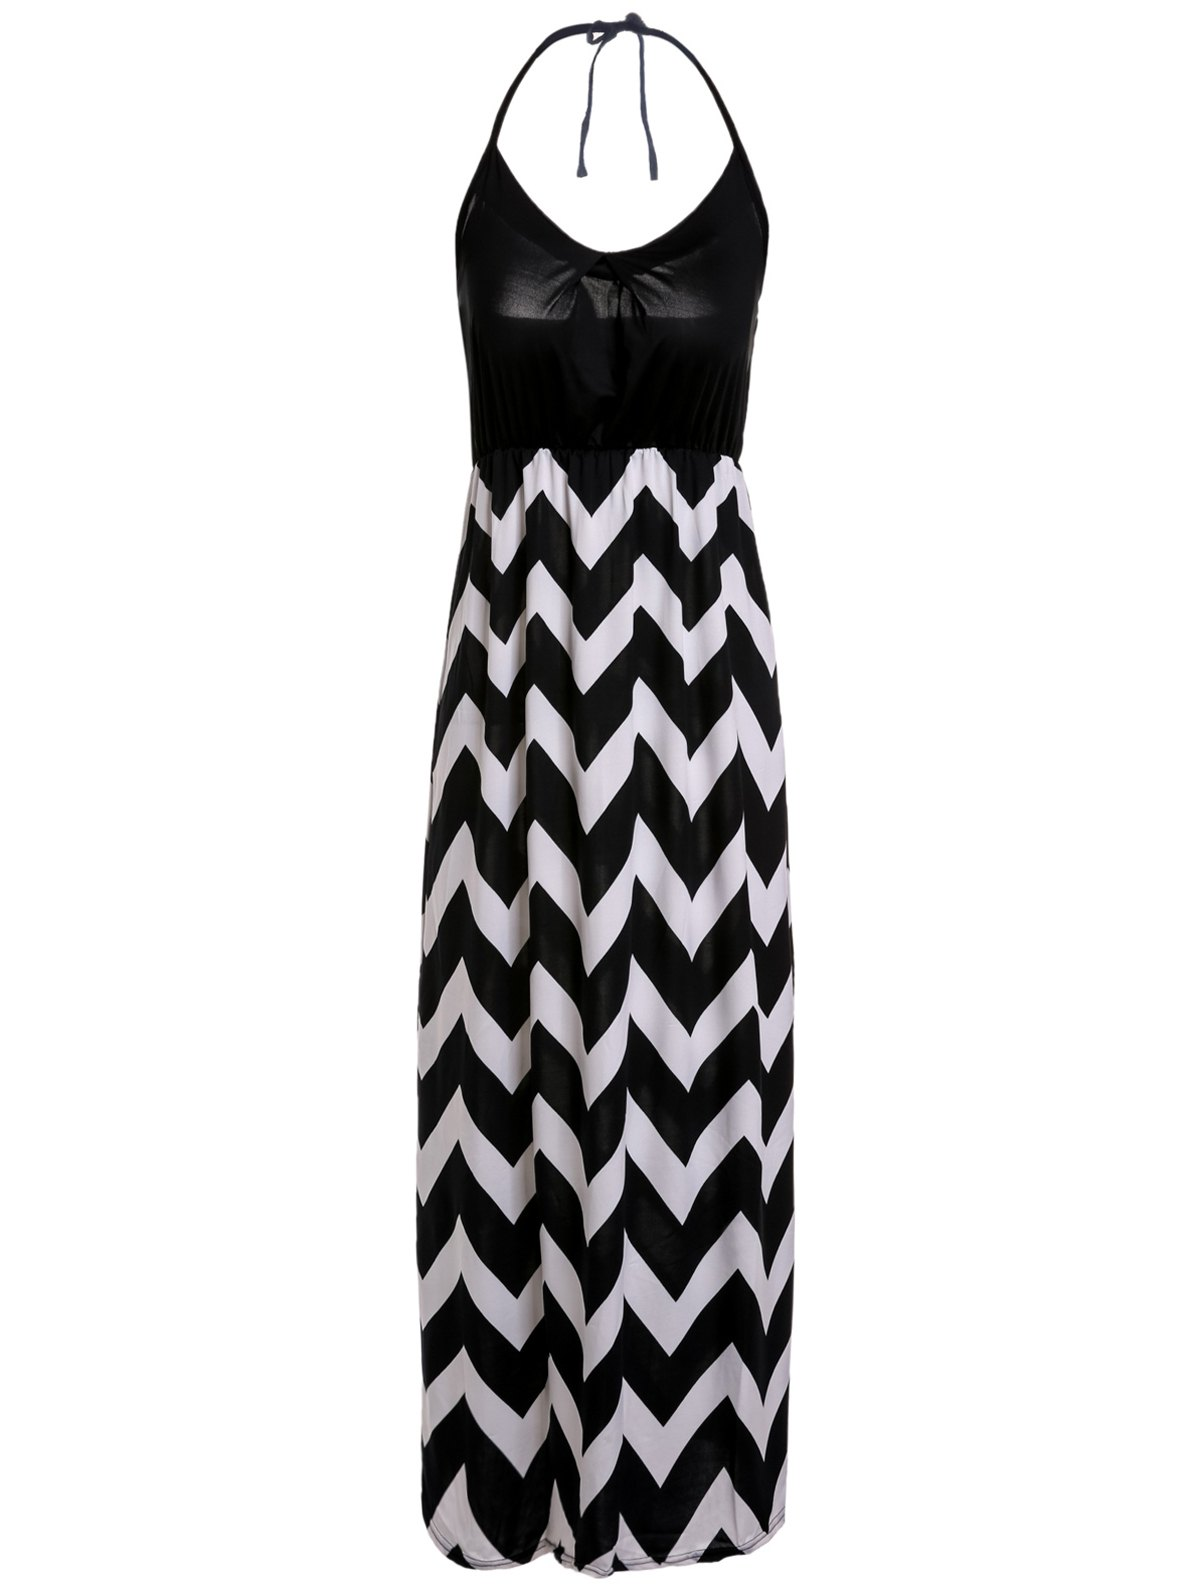 Stylish Women's Spaghetti Strap Zig Zag Maxi Dress - BLACK XL